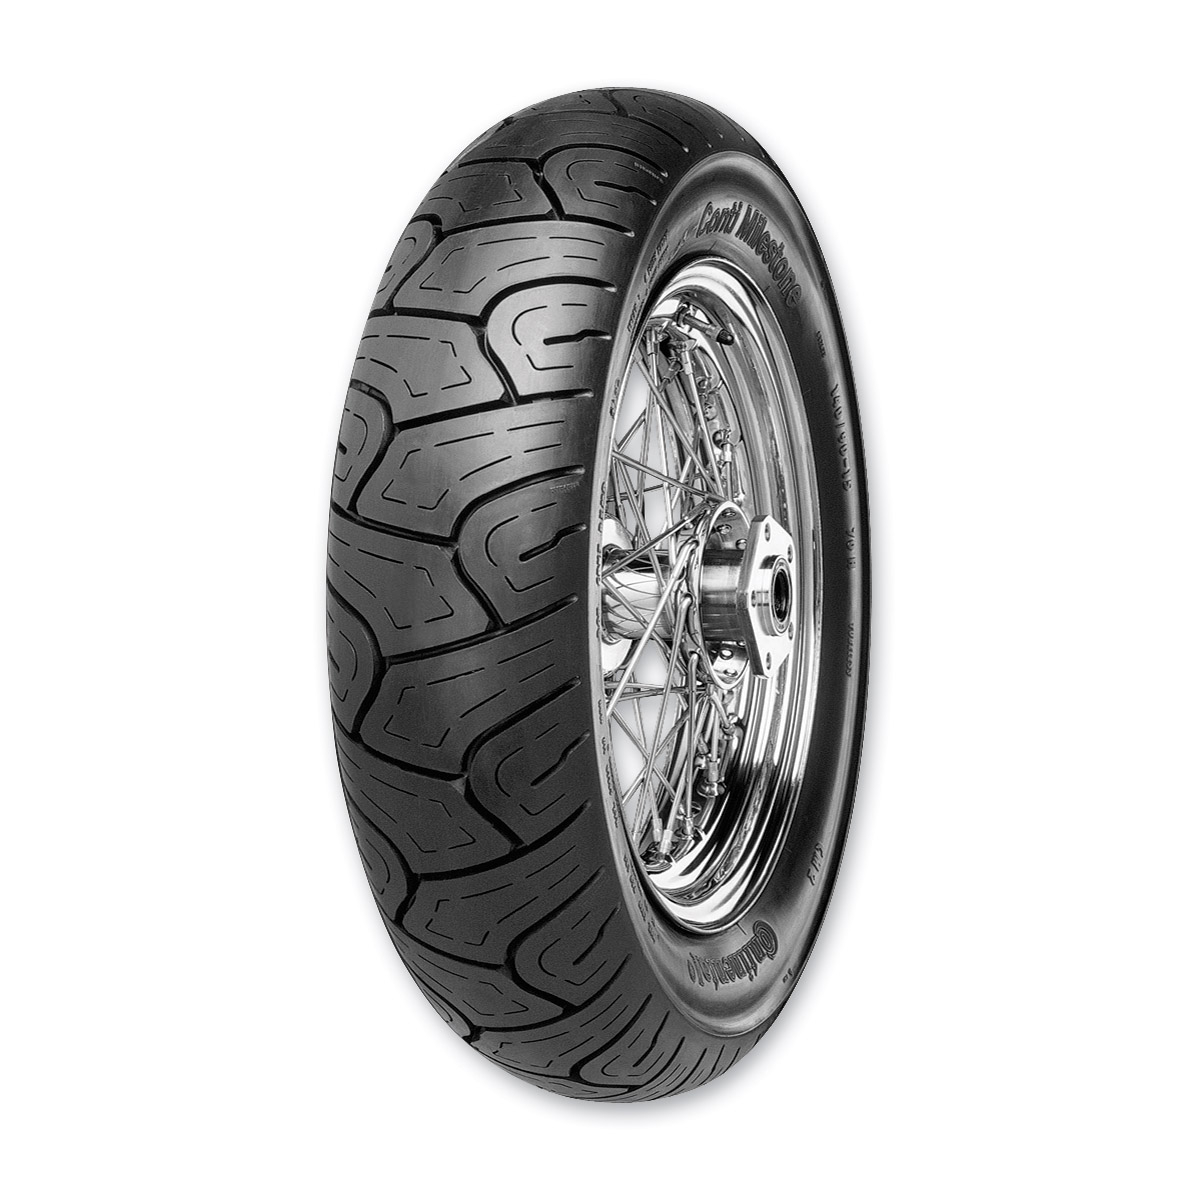 Continental Milestone CM2 Plus 140/90-16 Rear Tire